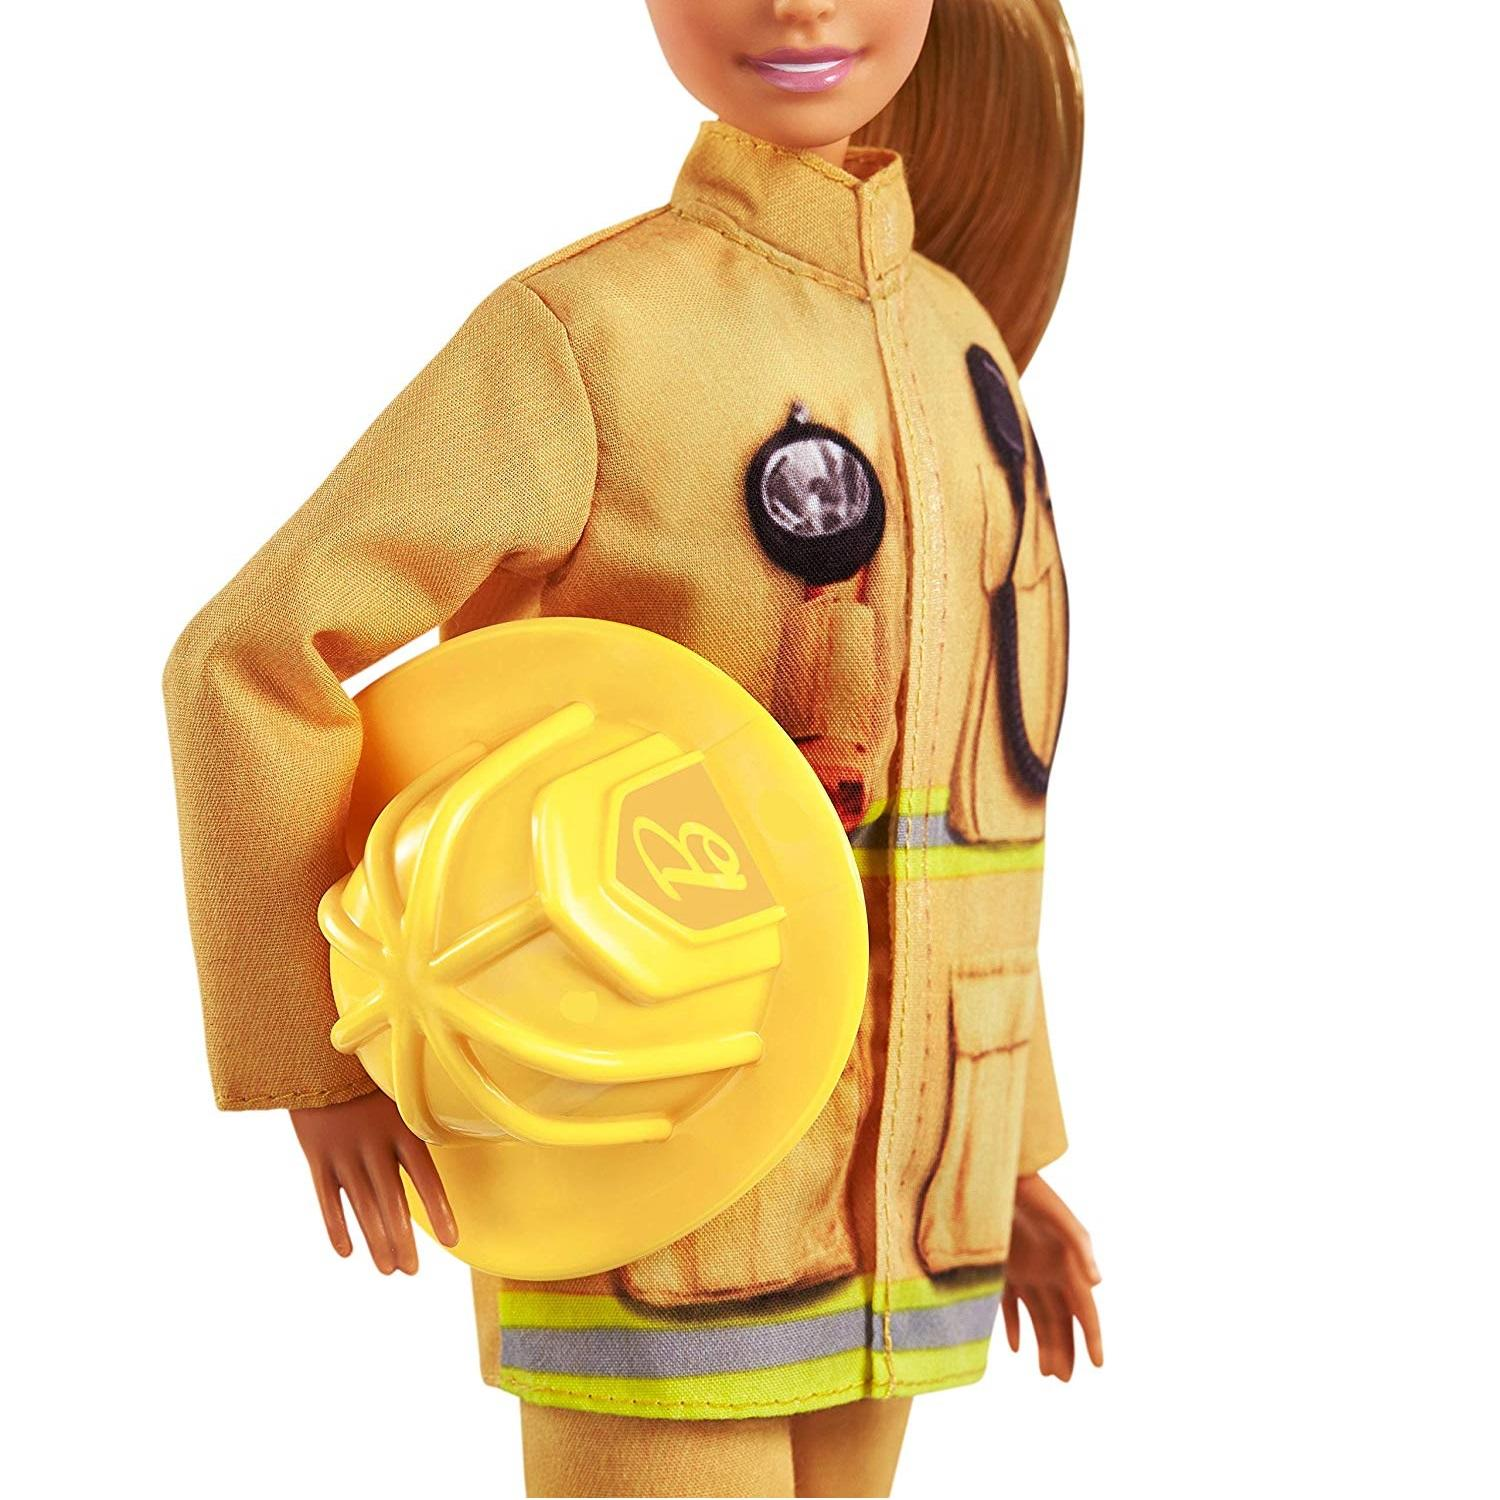 Barbie 60th Anniversary Firefighter Career Doll3